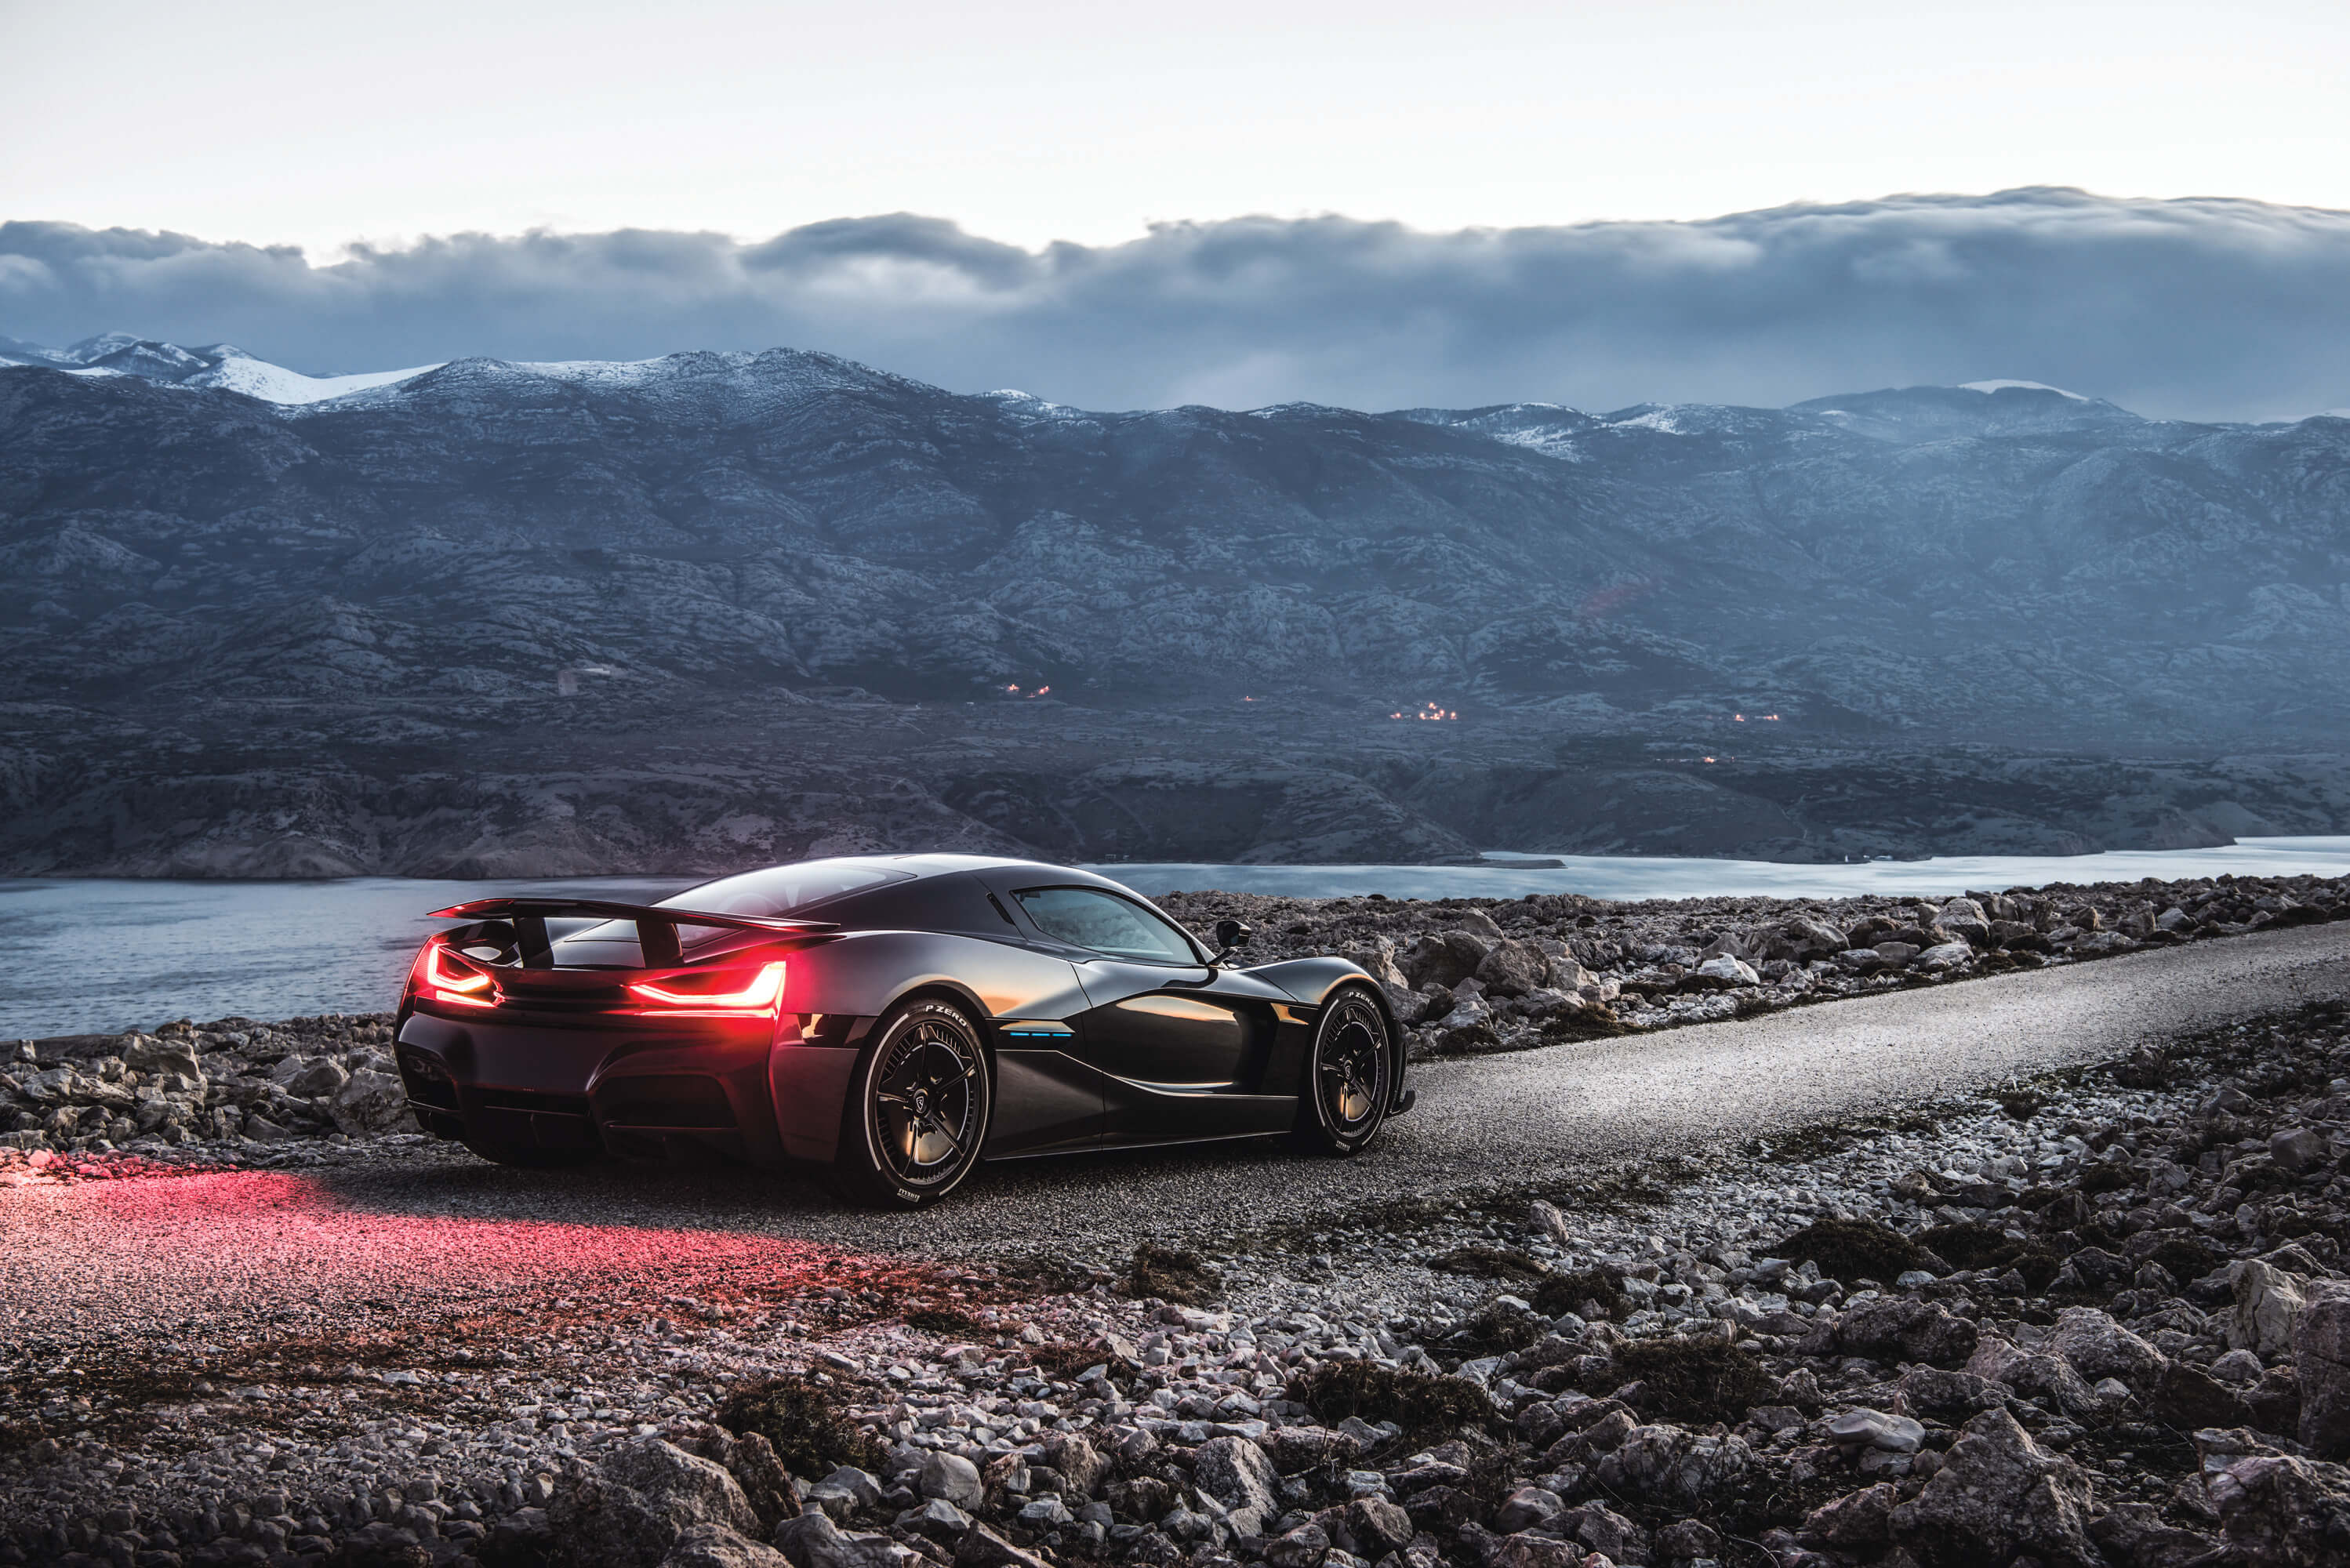 Rimac's new electric car does 0-60 in 1.85 seconds, packs 1,914 horsepower